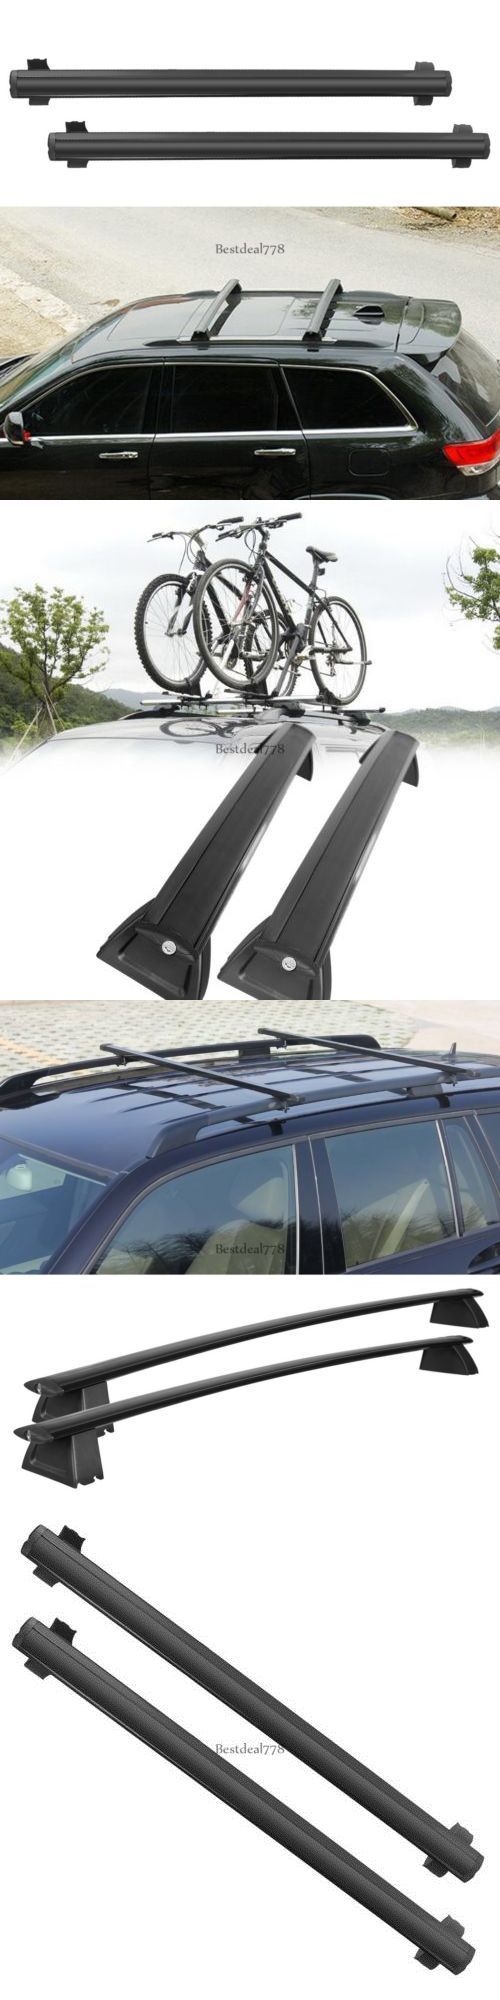 Other Kayak Canoe and Rafting 36123: Black Car Top Aluminum Cross Bar Roof Cargo Luggage Rack Btl802 -> BUY IT NOW ONLY: $80.62 on eBay!